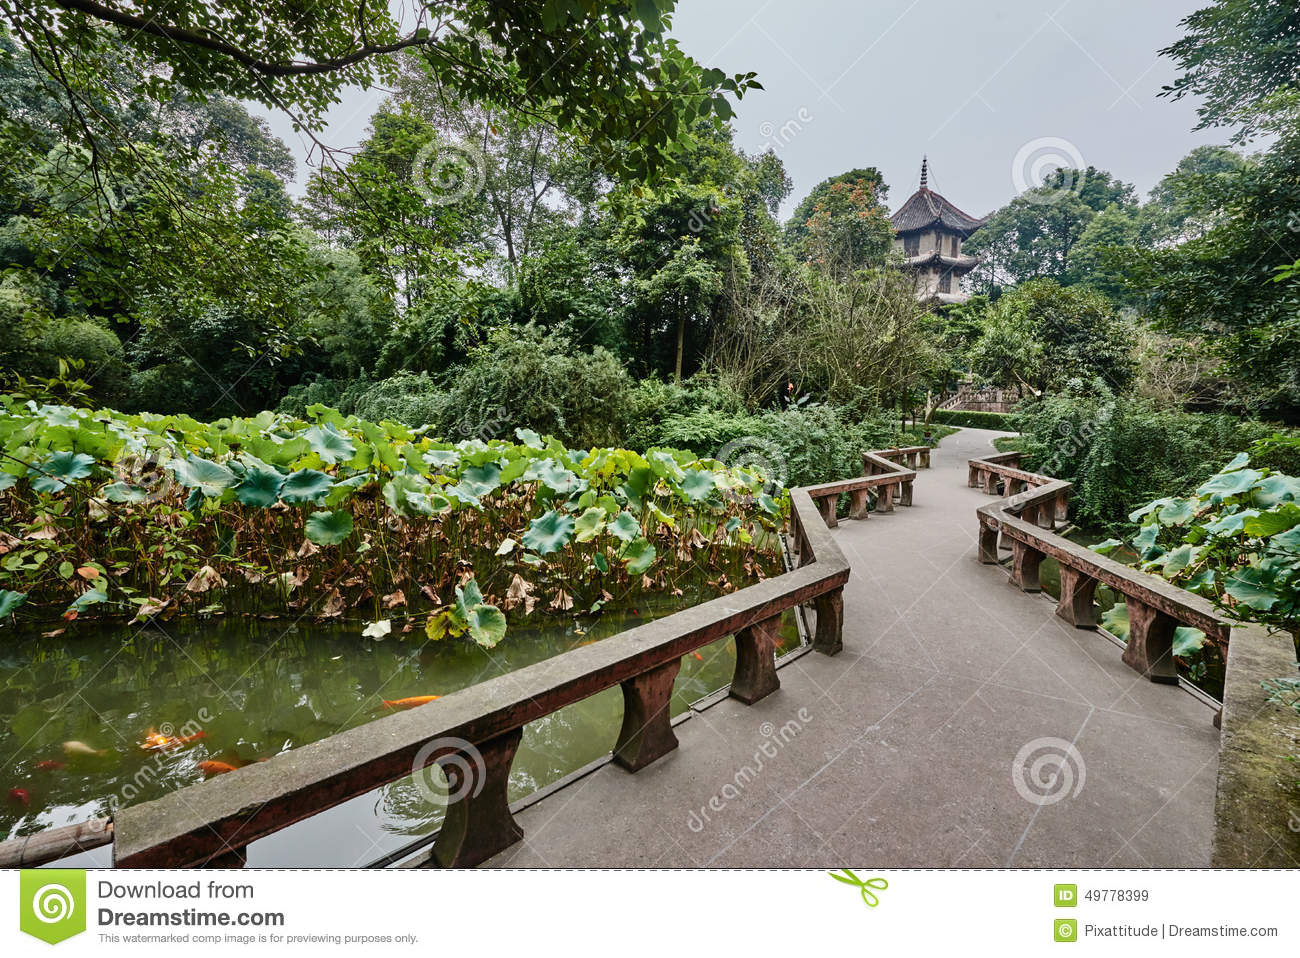 Download Du Fu Thatched Cottage Chengdu Sichuan China Stock Image - Image of culture, thatched: 49778399